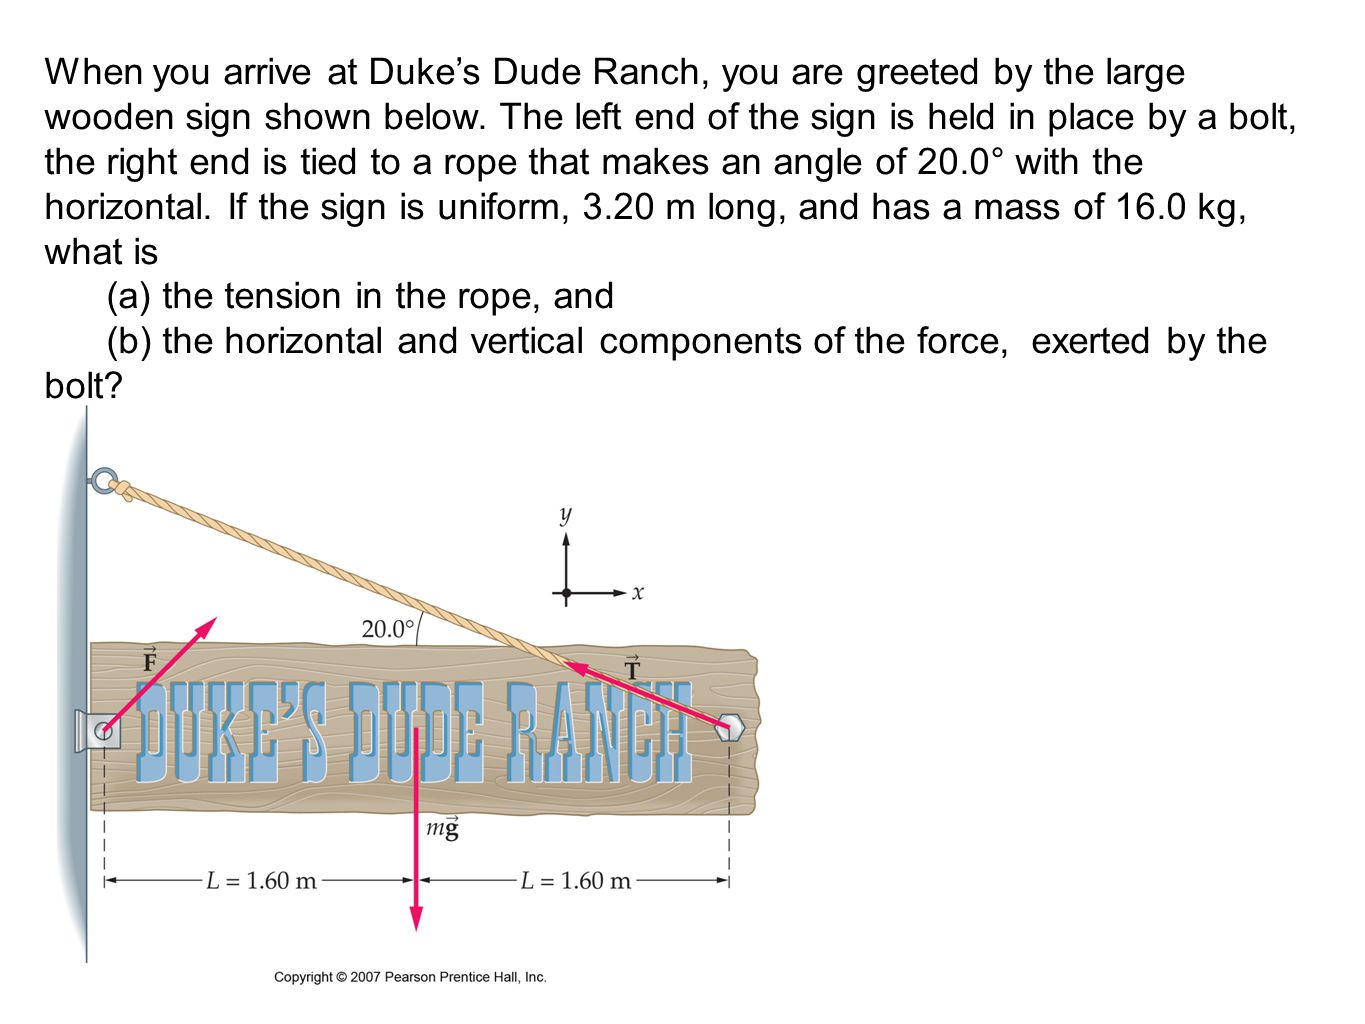 When you arrive at Duke's Dude Ranch, you are greeted by the large wooden sign shown below. The left end of the sign is held in place by a bolt, the right end is tied to a rope that makes an angle of 20.0° with the horizontal. If the sign is uniform, 3.20 m long, and has a mass of 16.0 kg, what is